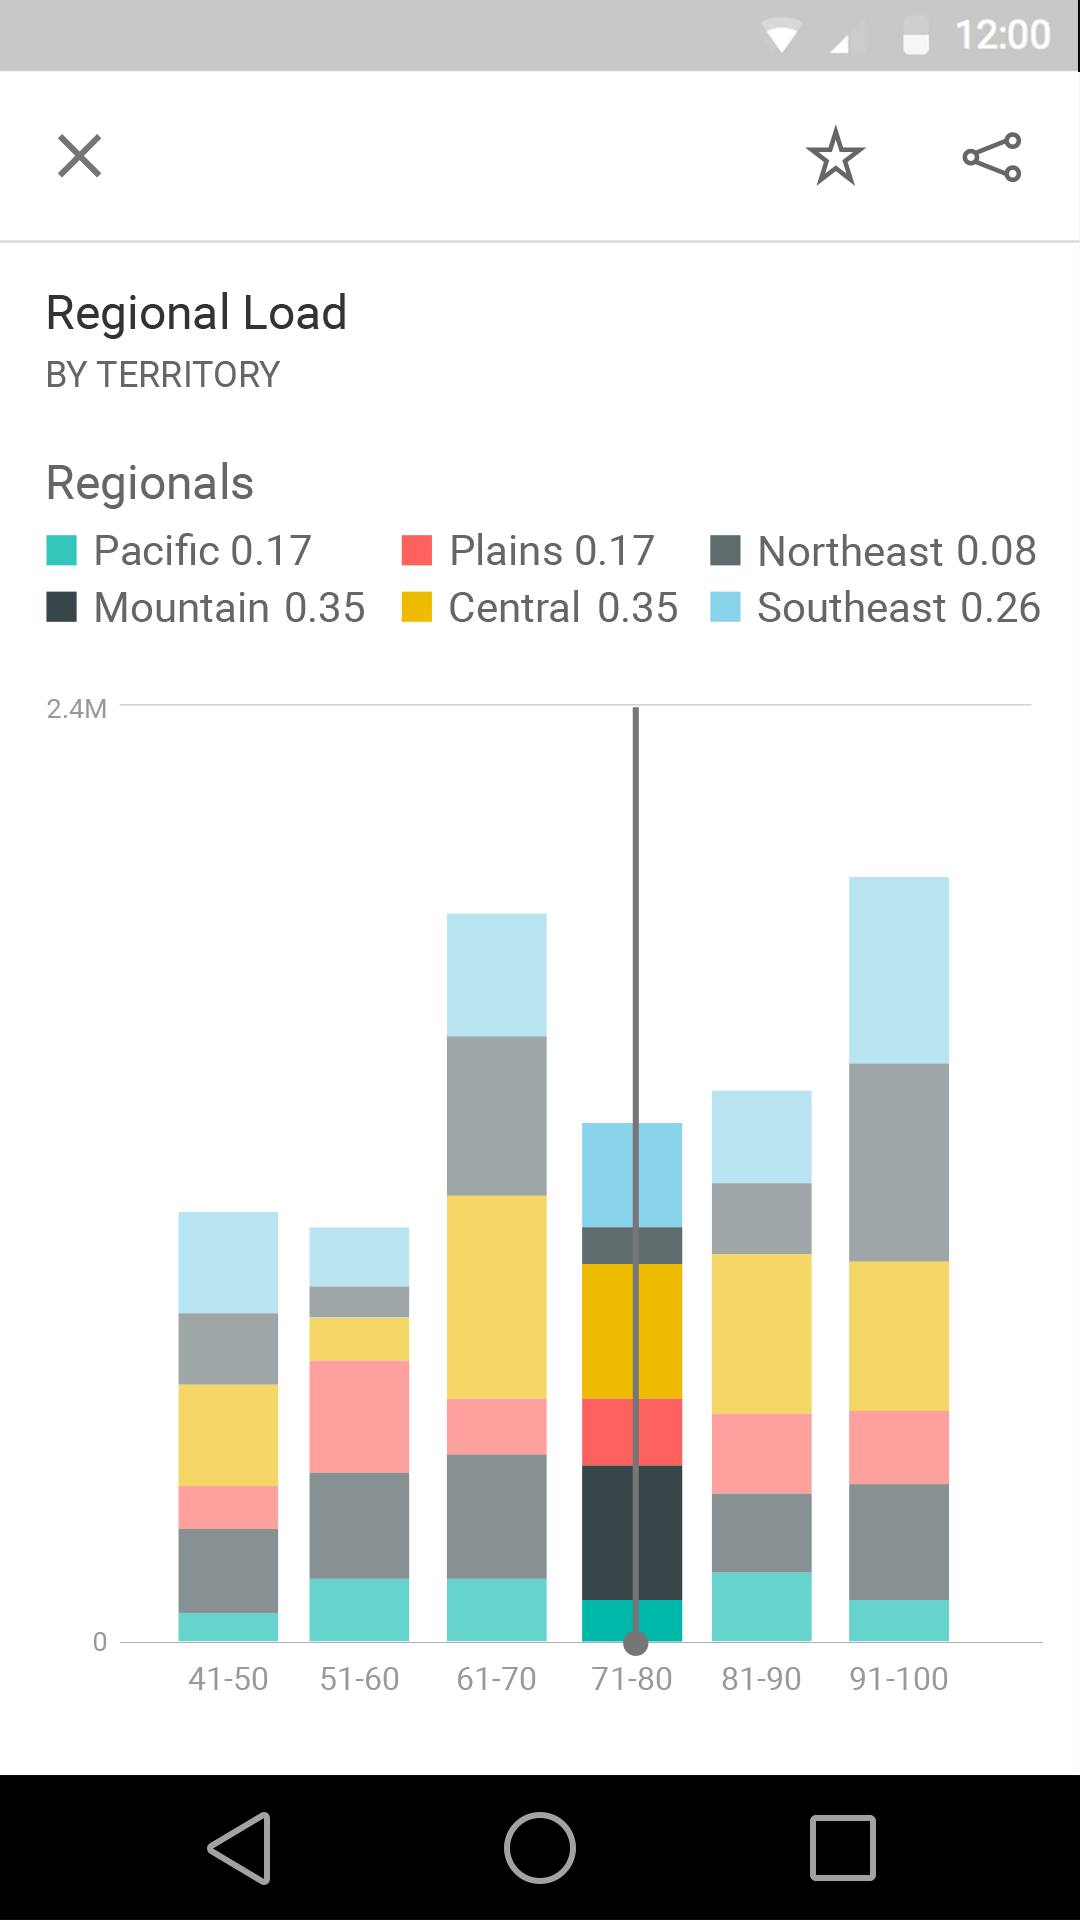 Power bi on the go microsoft power bi blog microsoft power bi for a pie chart tap a slice to see its values or spin the pie to display the values of the segment at the top of the pie nvjuhfo Images